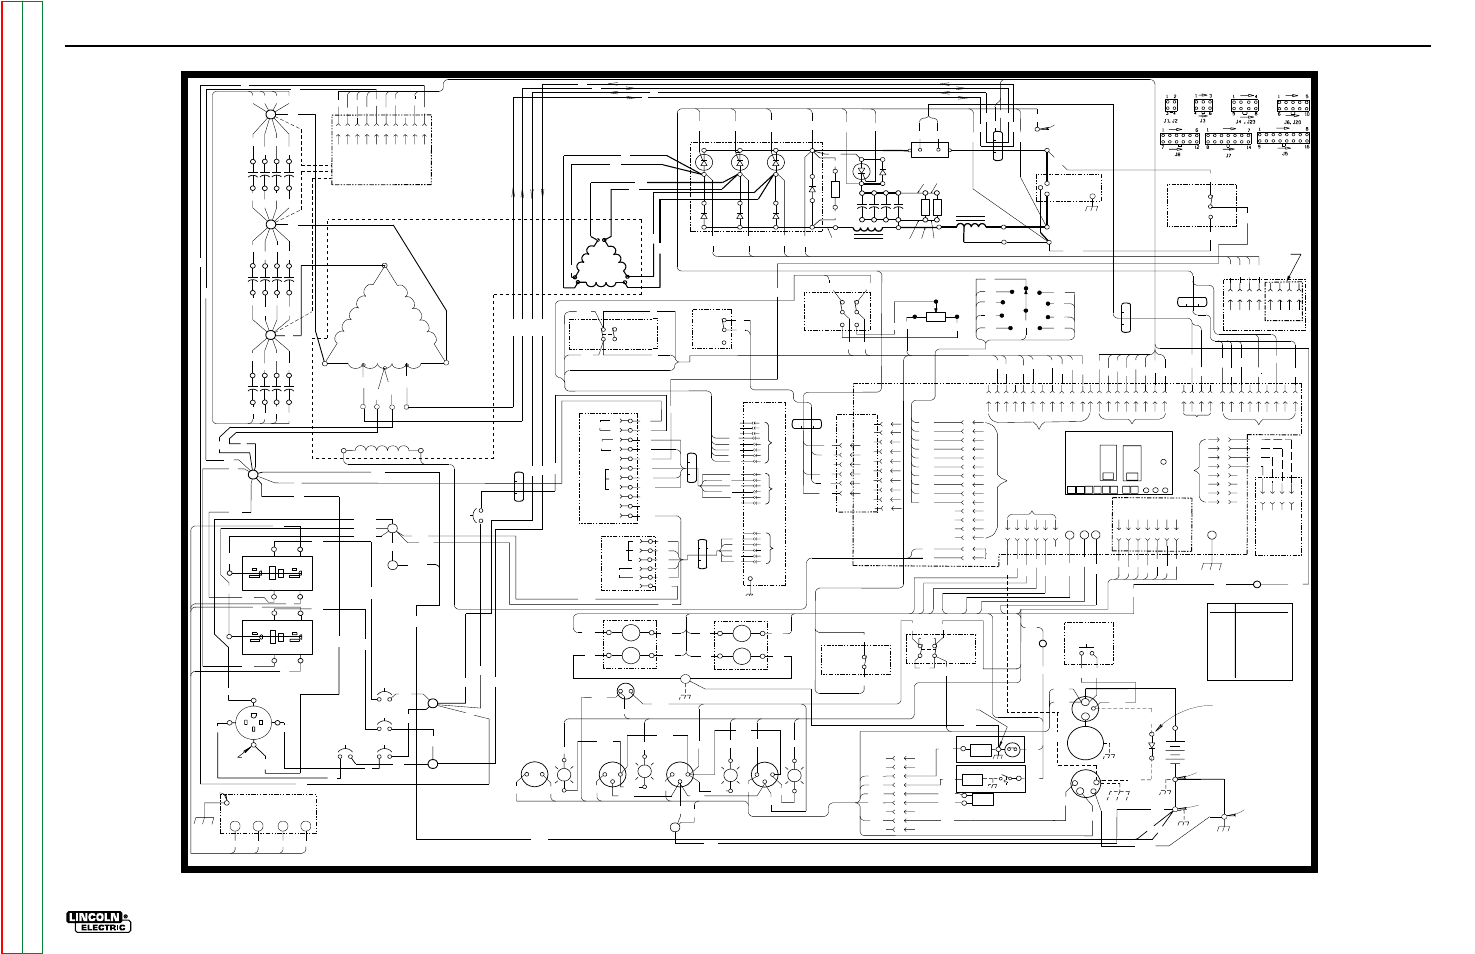 pac tato wiring diagram   23 wiring diagram images